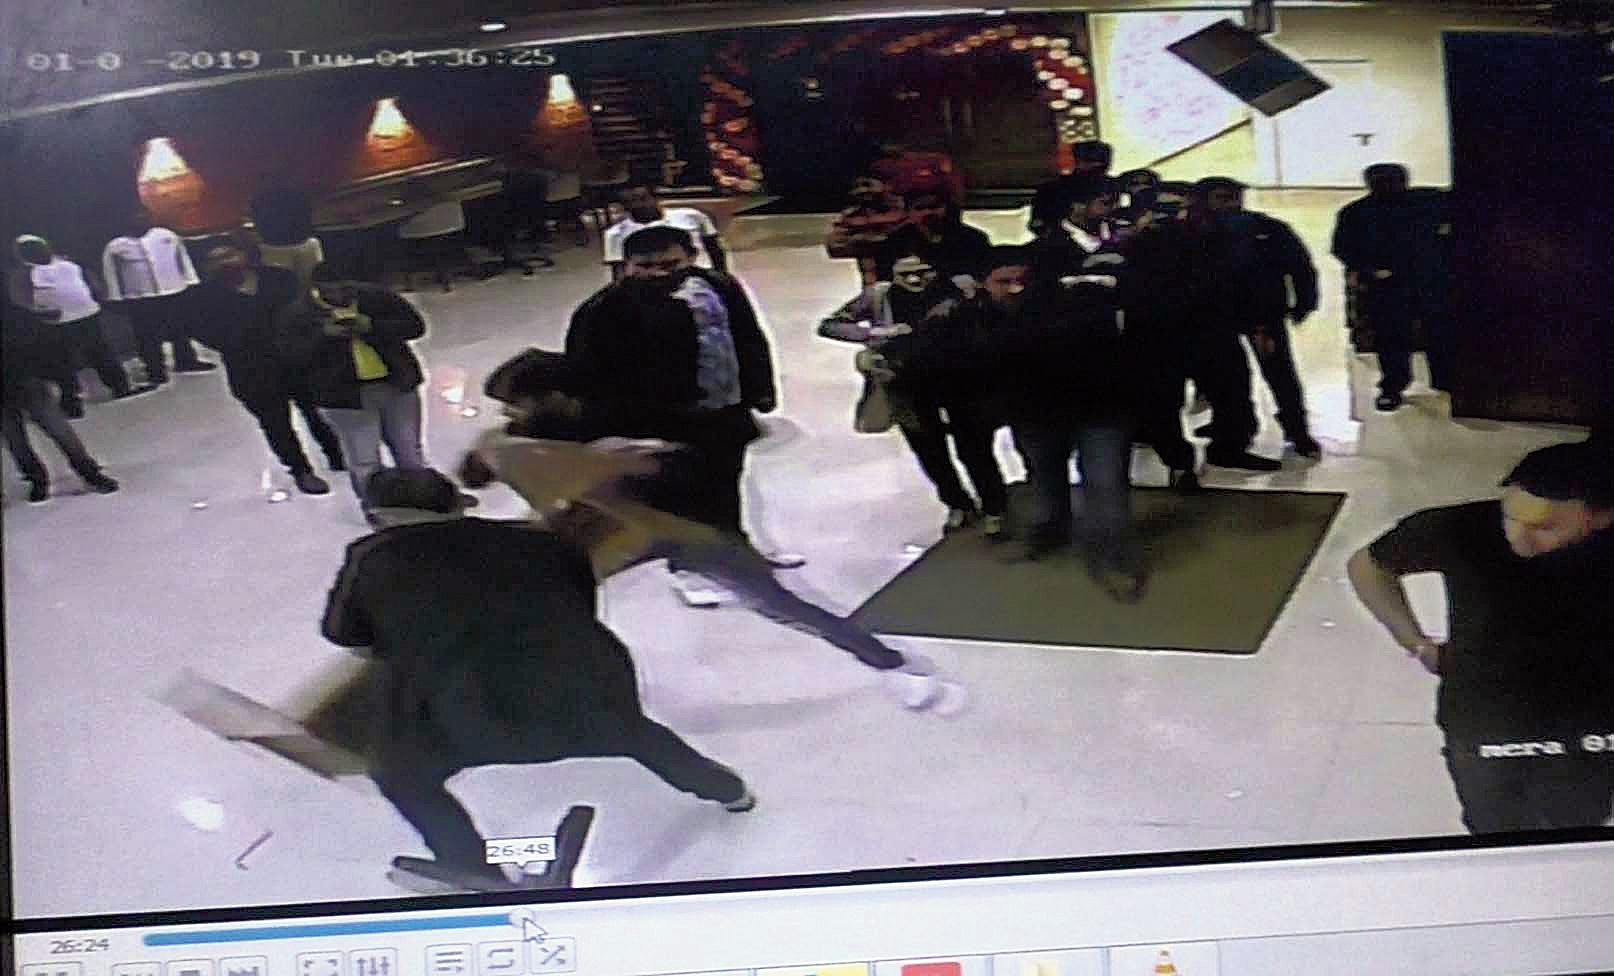 A screenshot of CCTV footage from the pub at the time of the attack.